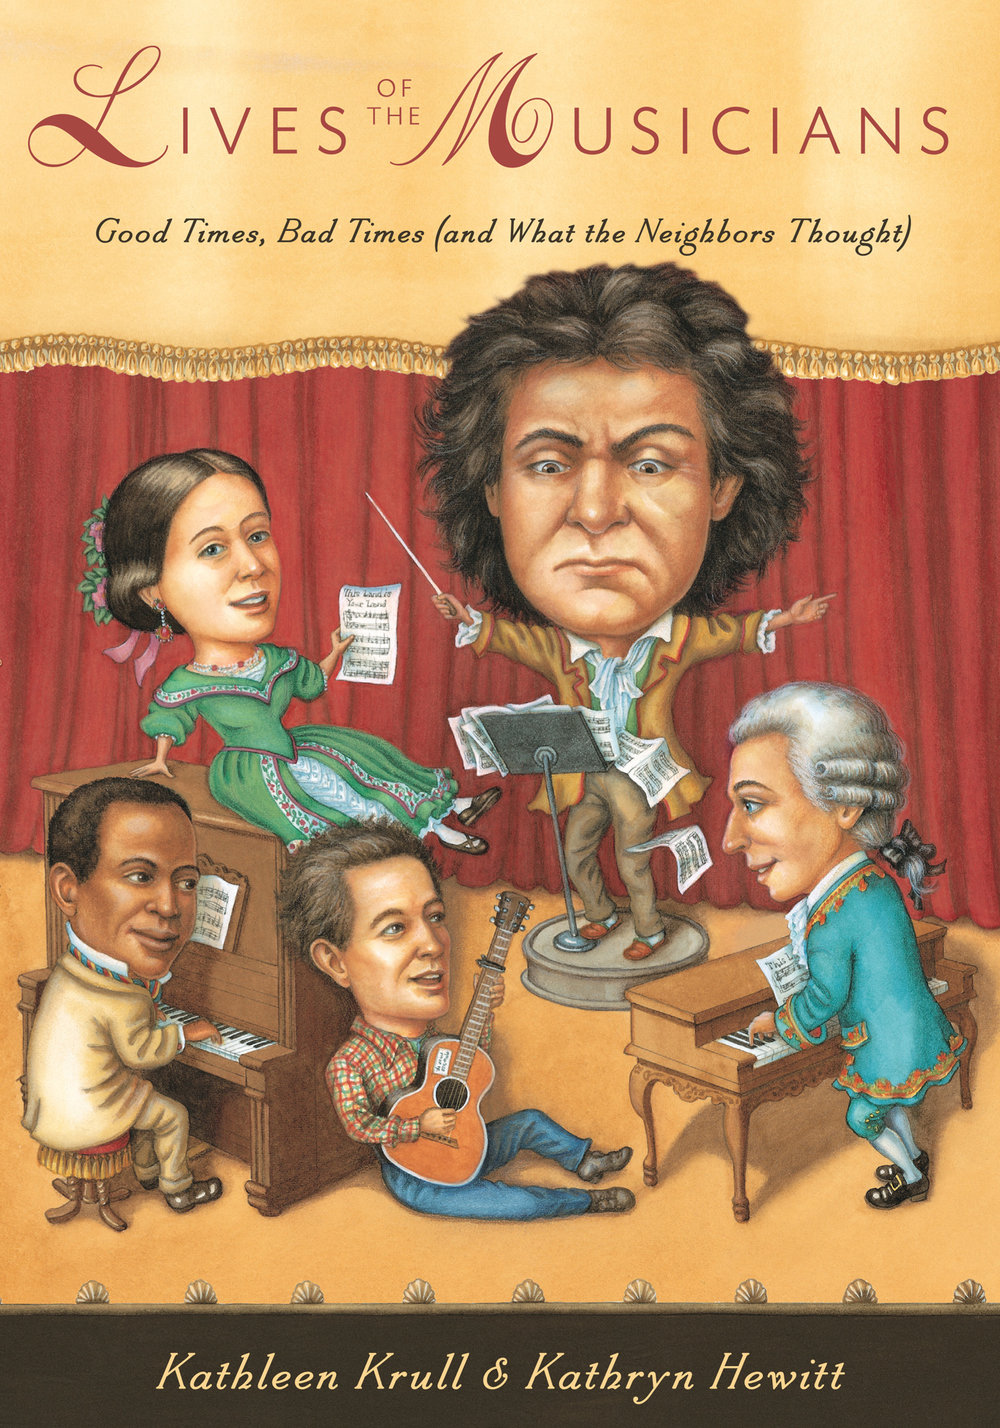 """Lives of the Musicians: Good Times, Bad Times (and What the Neighbors Thought) - Kathleen Krull, illustrated by Kathryn Hewitt   Houghton Mifflin Harcourt 2013Here are the life stories of such diverse figures as Vivaldi, Mozart, Scott Joplin, Nadia Boulanger, and Woody Guthrie. Readers will learn of both their musical natures and the personal, humorous characteristics that make their lives so fascinating. """"Living, breathing anecdotes--the stuff of which the best biography is made."""" --Publishers Weekly"""